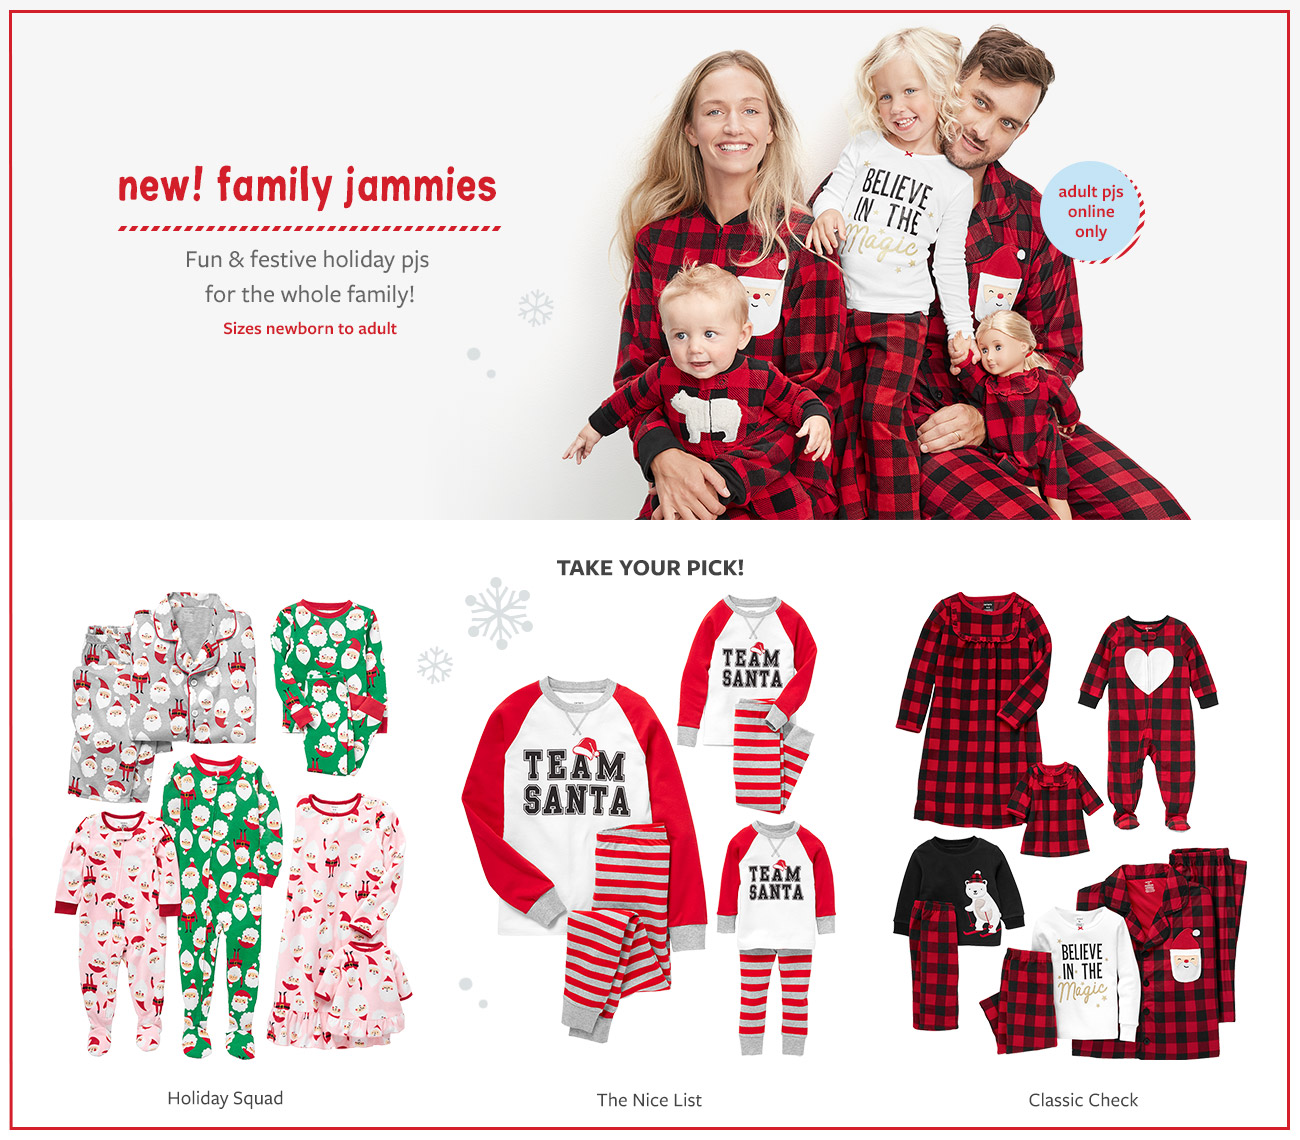 new family jammies | fun & festive holiday pjs for the whole family! Sizes newborn to adult | adult PJs online only | take your pick Holiday squad, the nice list, or classic check